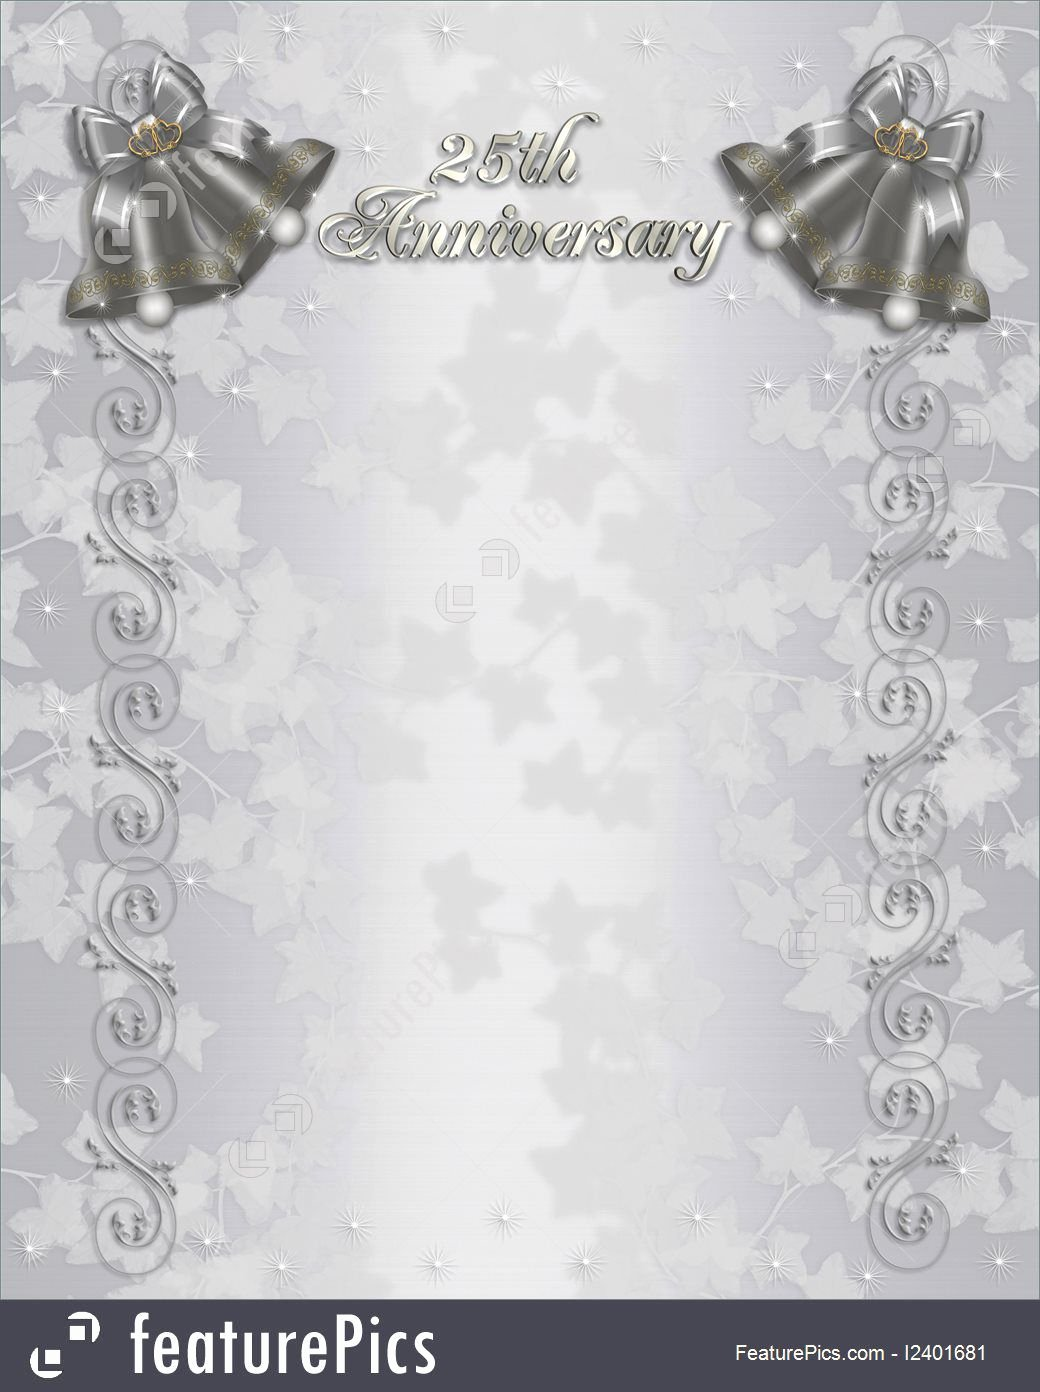 Wedding Anniversary Invite Template Elegant Free 25th Wedding Anniversary Invitations Free Templates